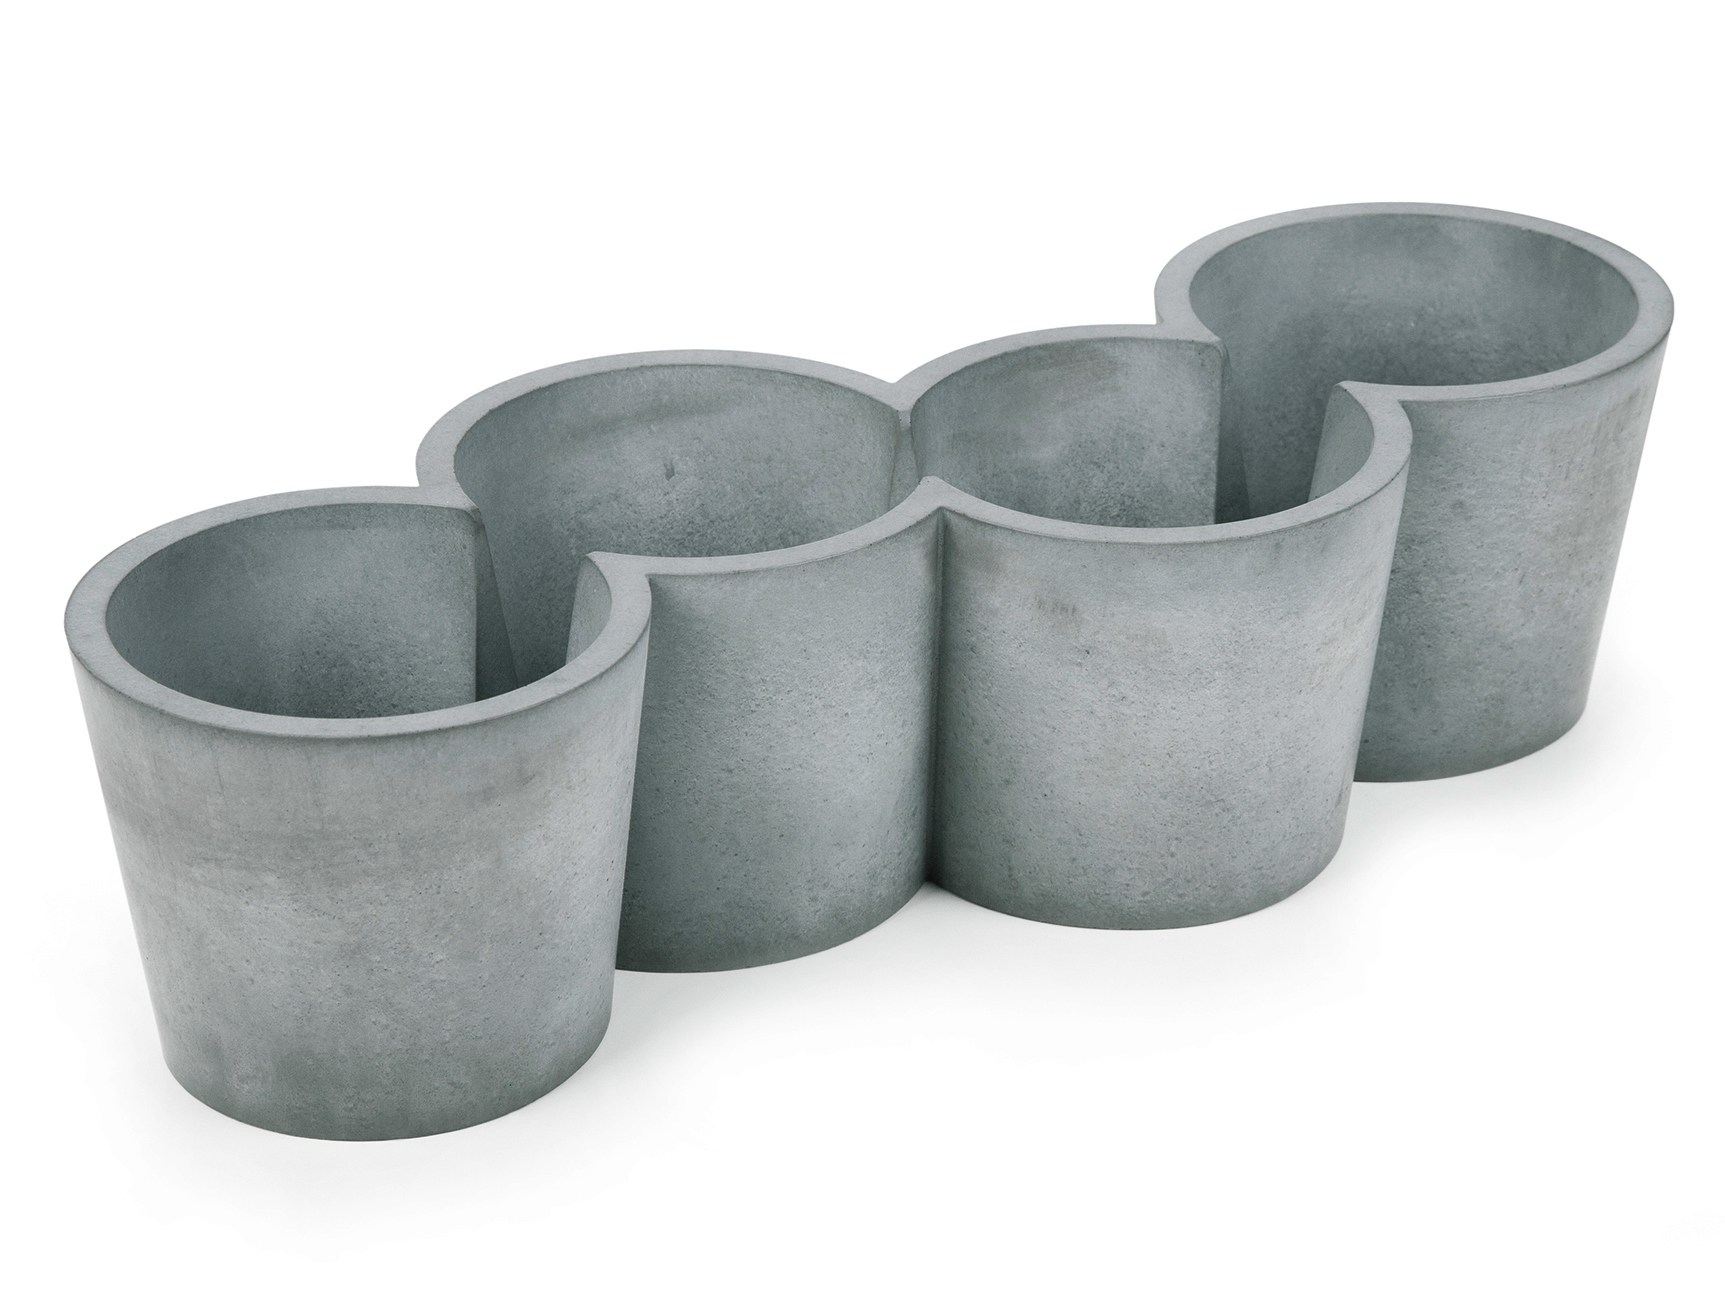 cement plant pot potpot by konstantin slawinski design. Black Bedroom Furniture Sets. Home Design Ideas